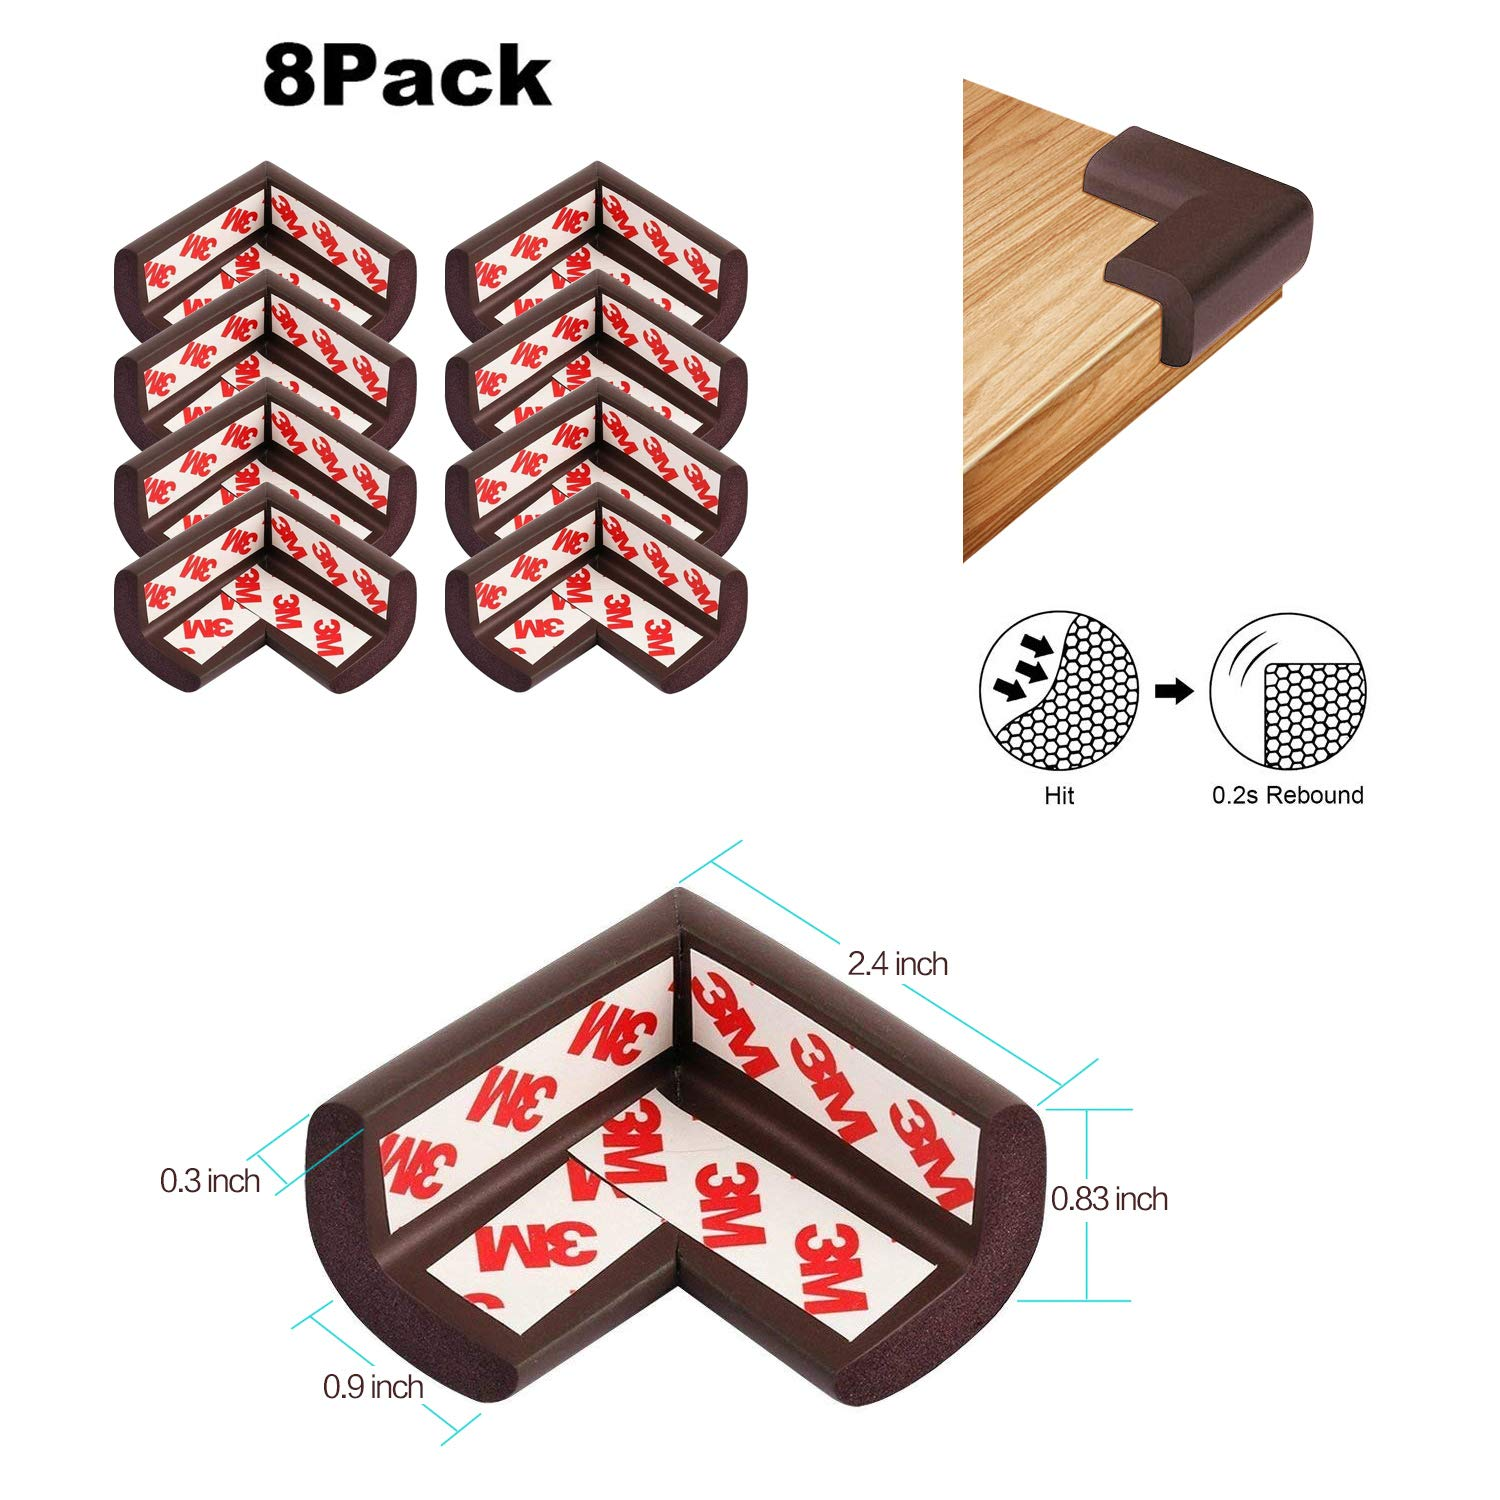 Baby Proofing Edge and Corner Guards,NBR Rubber Set for Safe Edge & Corner Guards Cushion,23Ft [19.68Ft Edge + 8 Corner],Child Safety Furniture Bumper(Brown) by COCOLi (Image #2)